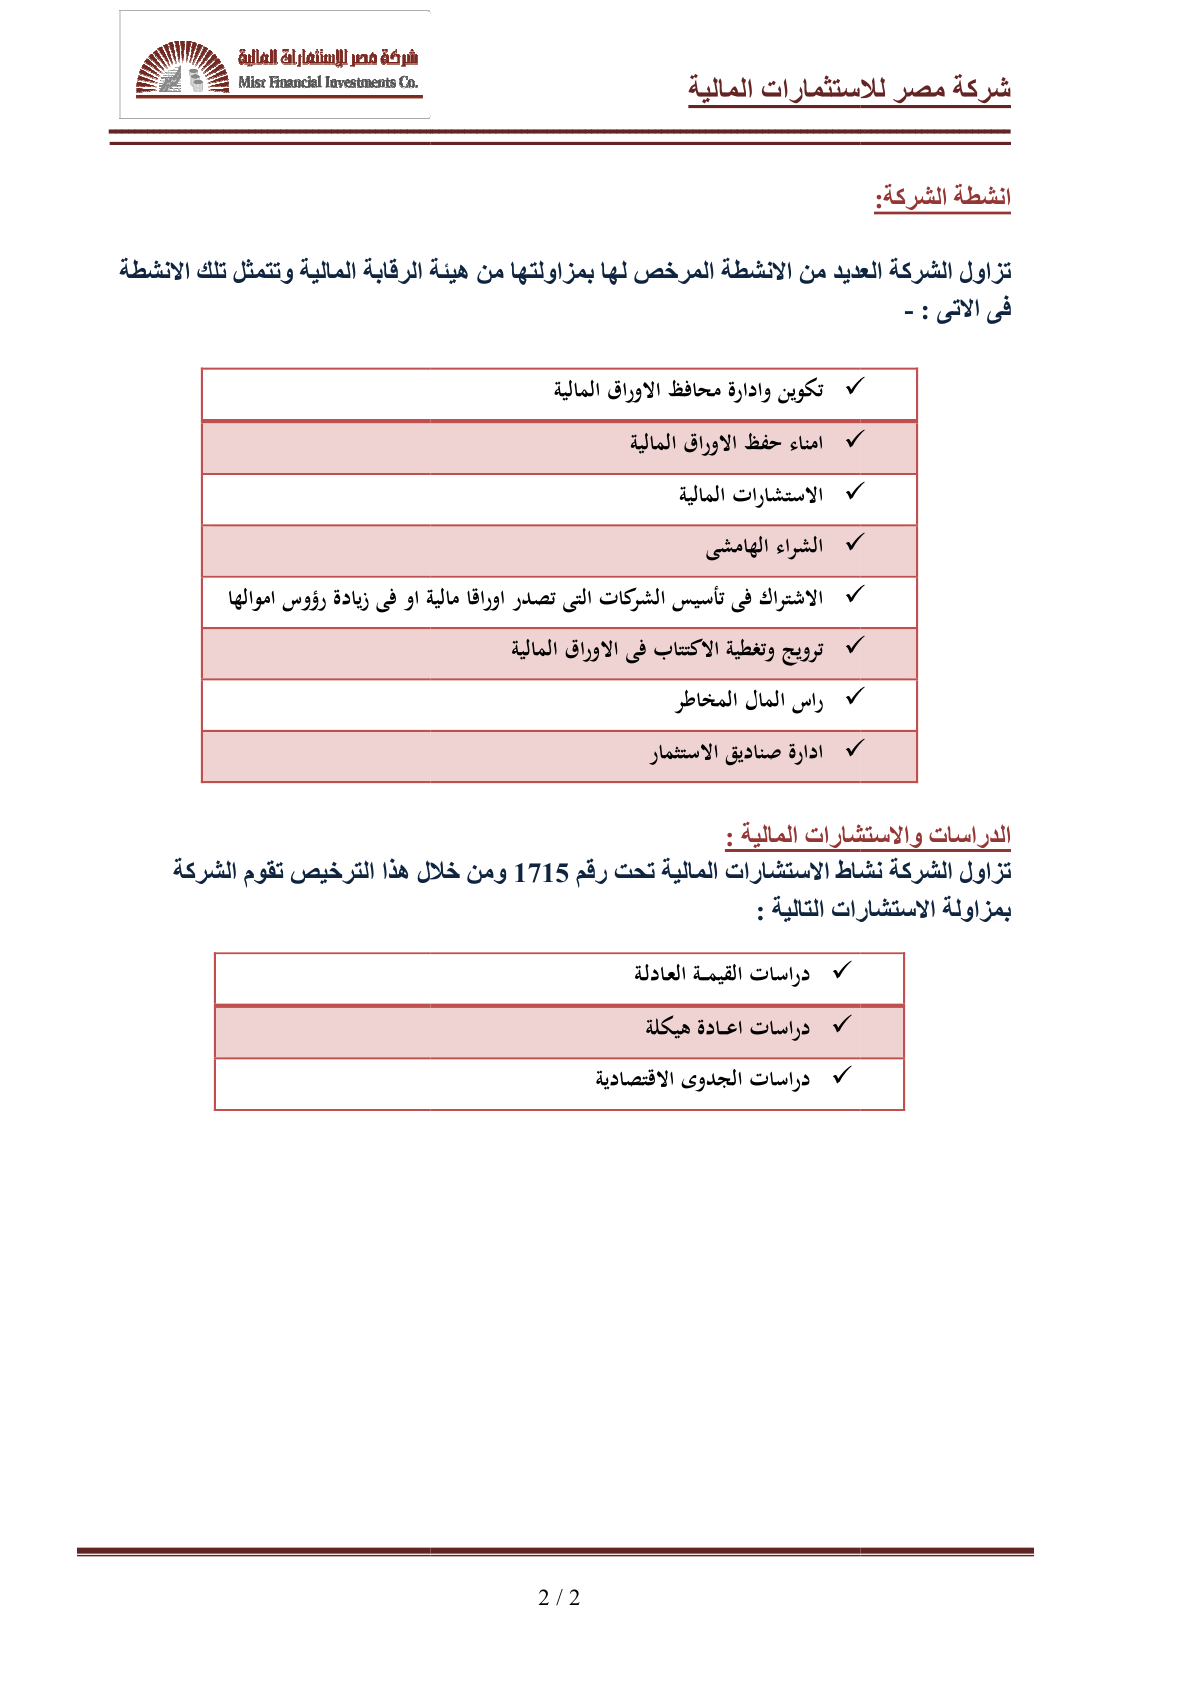 Misr Financial Investment CO - products 1